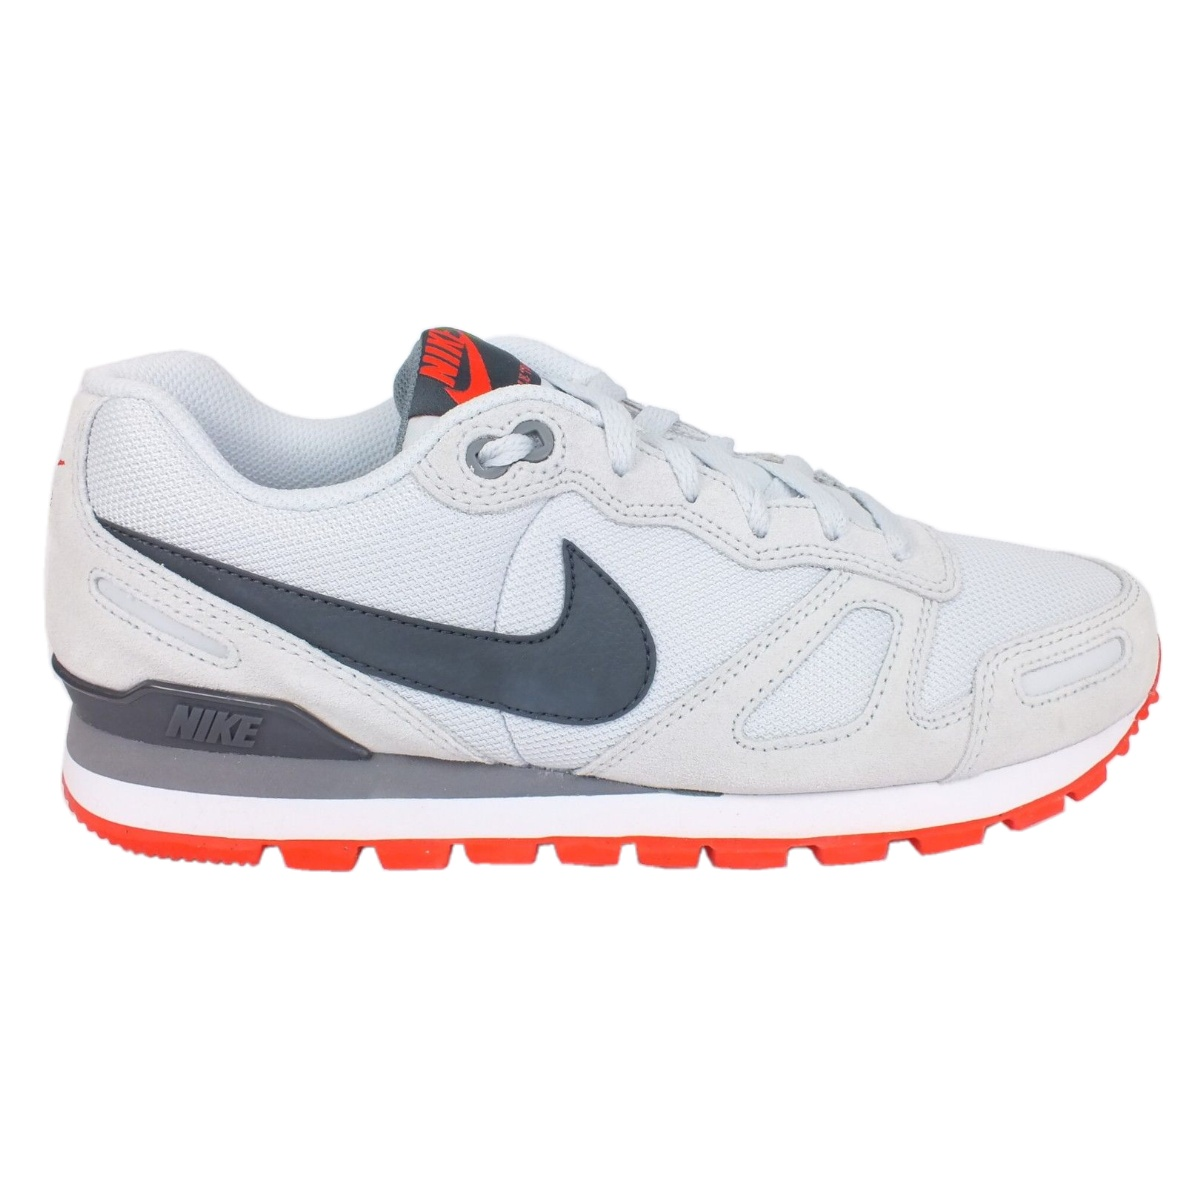 nike air waffle trainer men 39 s trainers shoes various. Black Bedroom Furniture Sets. Home Design Ideas